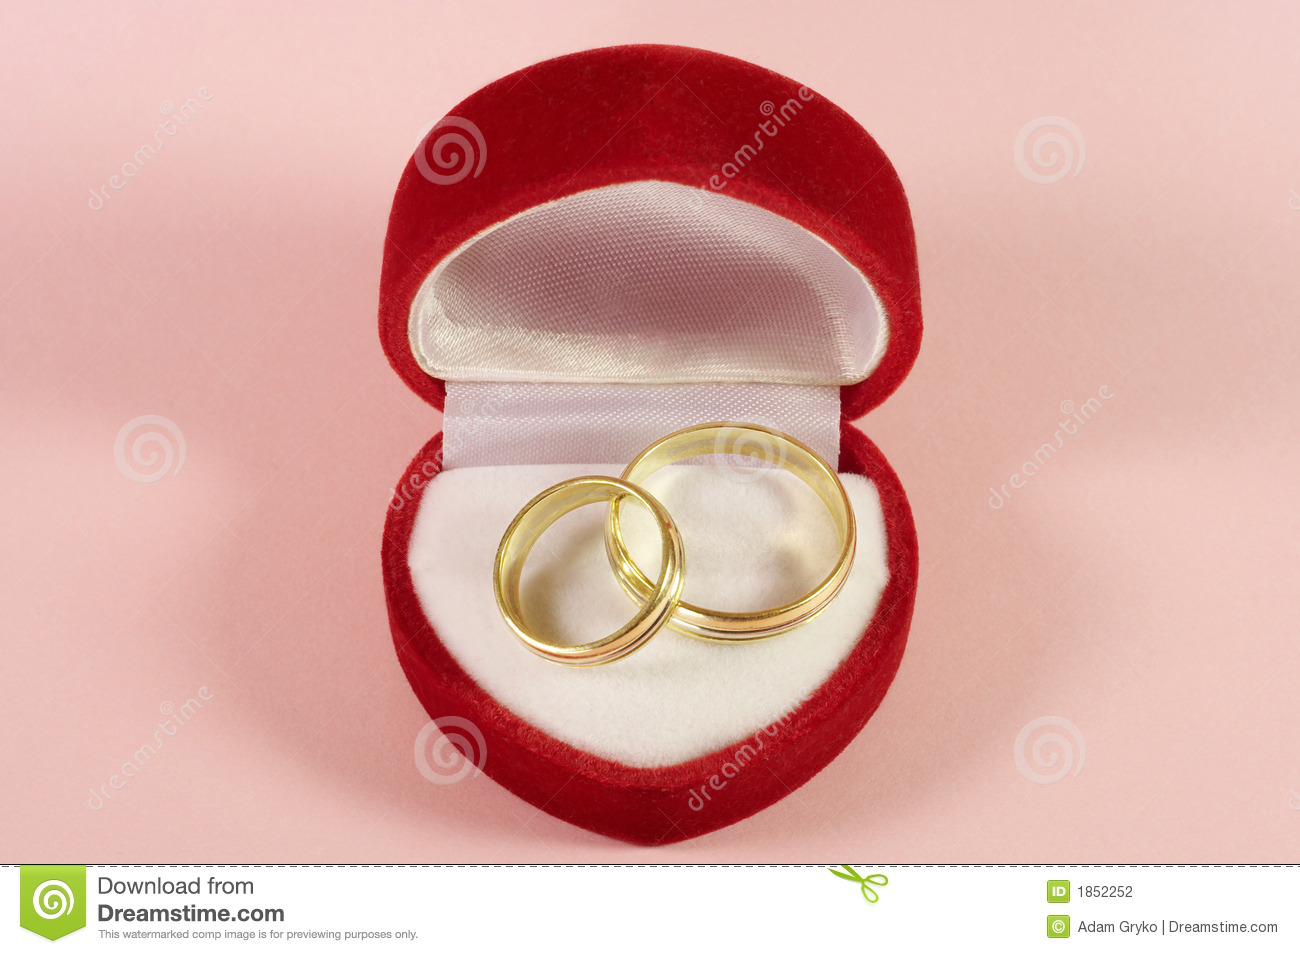 Wedding rings stock photo. Image of rings, husband, love - 1852252